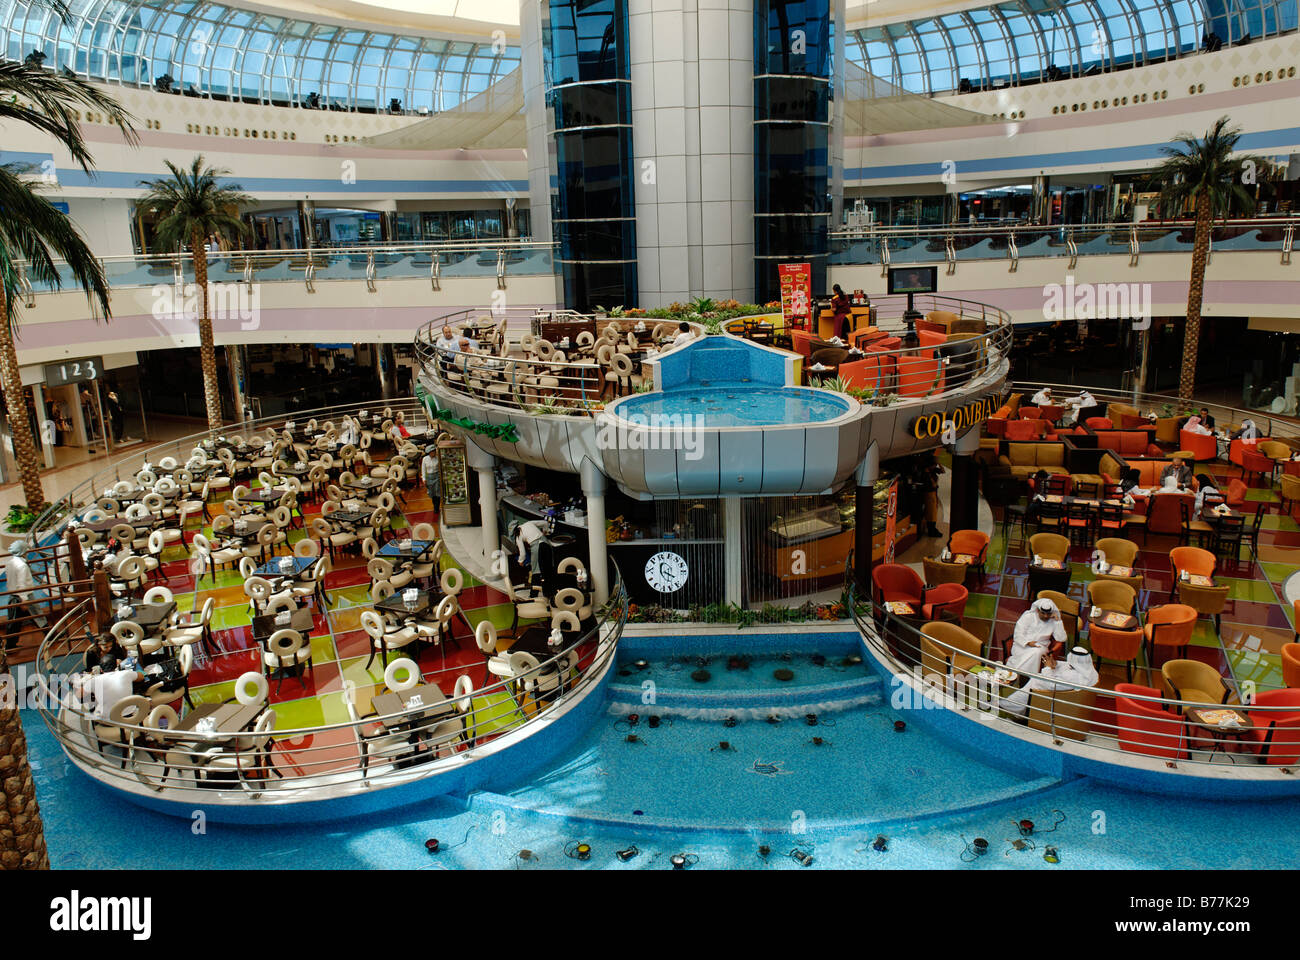 marina mall shopping center emirate of abu dhabi united arab stock photo 21681585 alamy. Black Bedroom Furniture Sets. Home Design Ideas